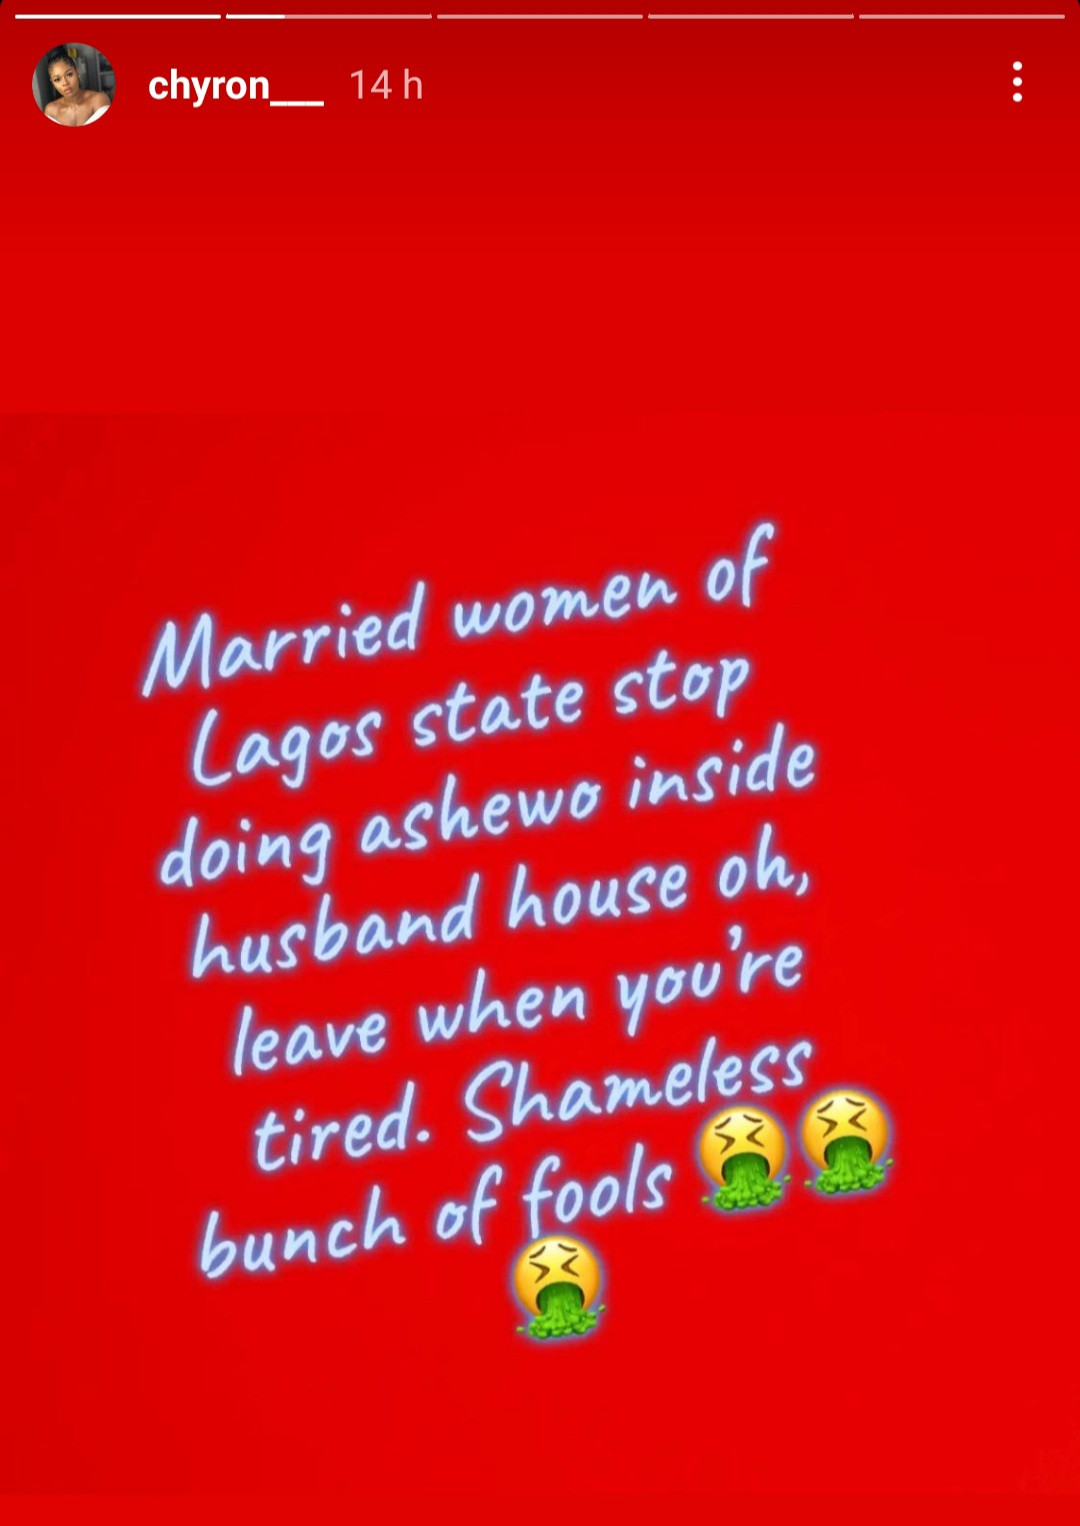 """Stop doing ashewo inside husband"